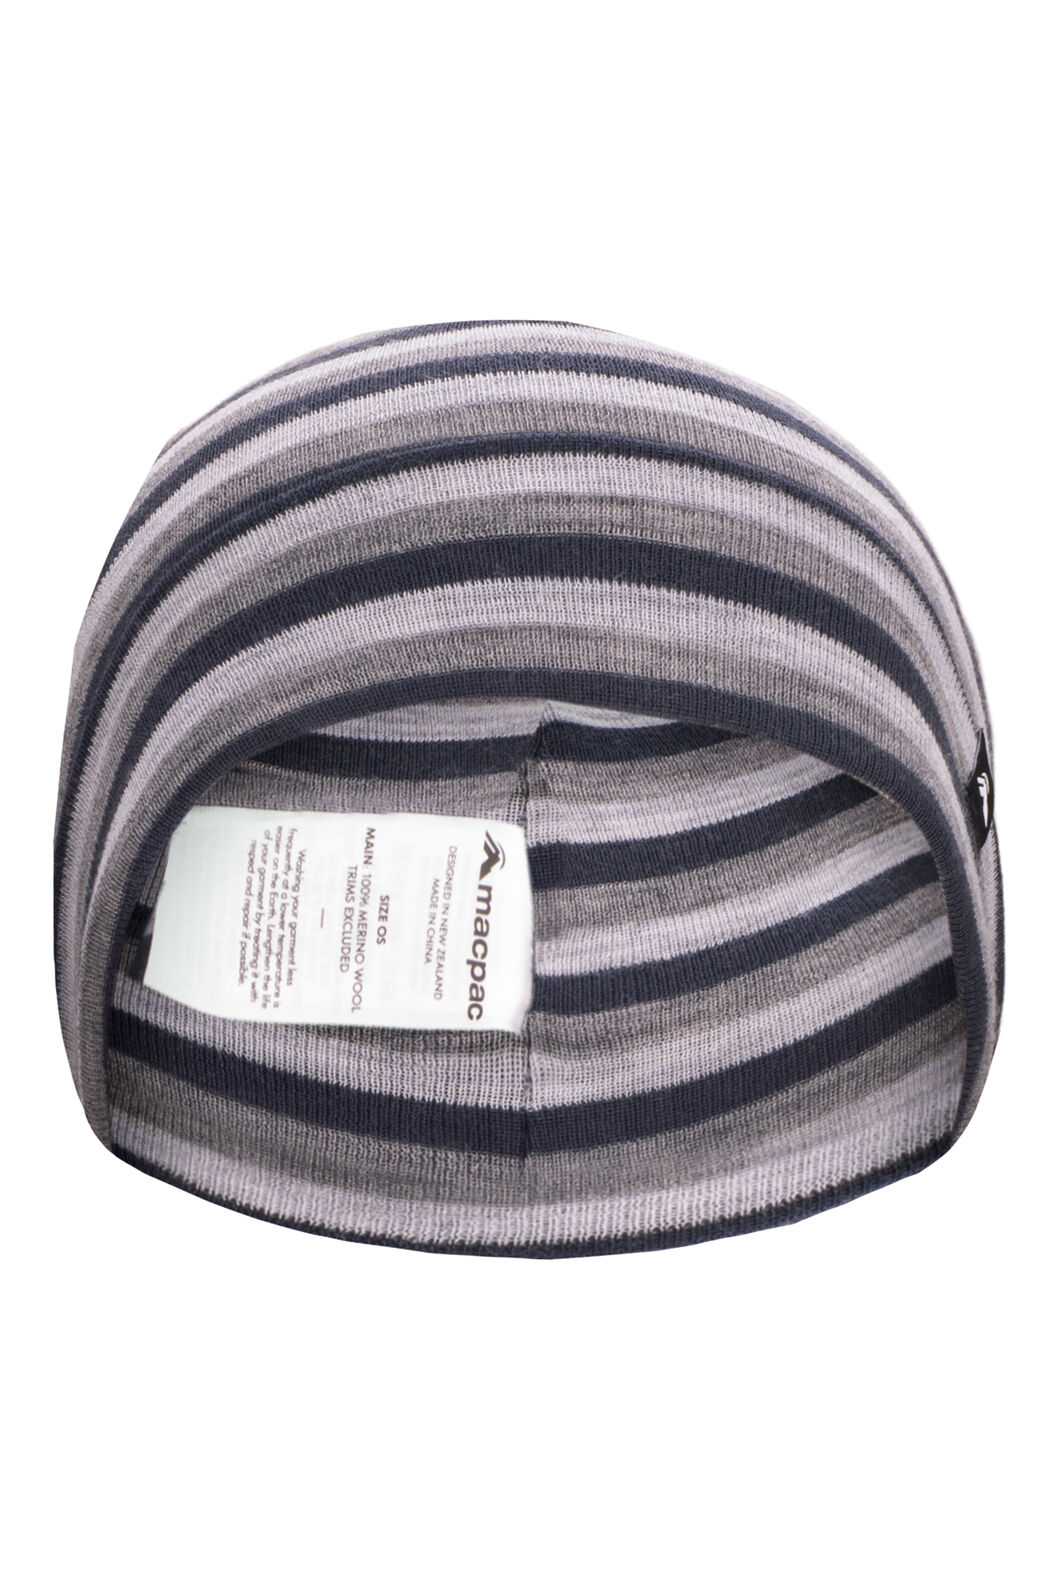 Macpac 220 Merino Beanie — Kids', Grey/Navy Stripe, hi-res